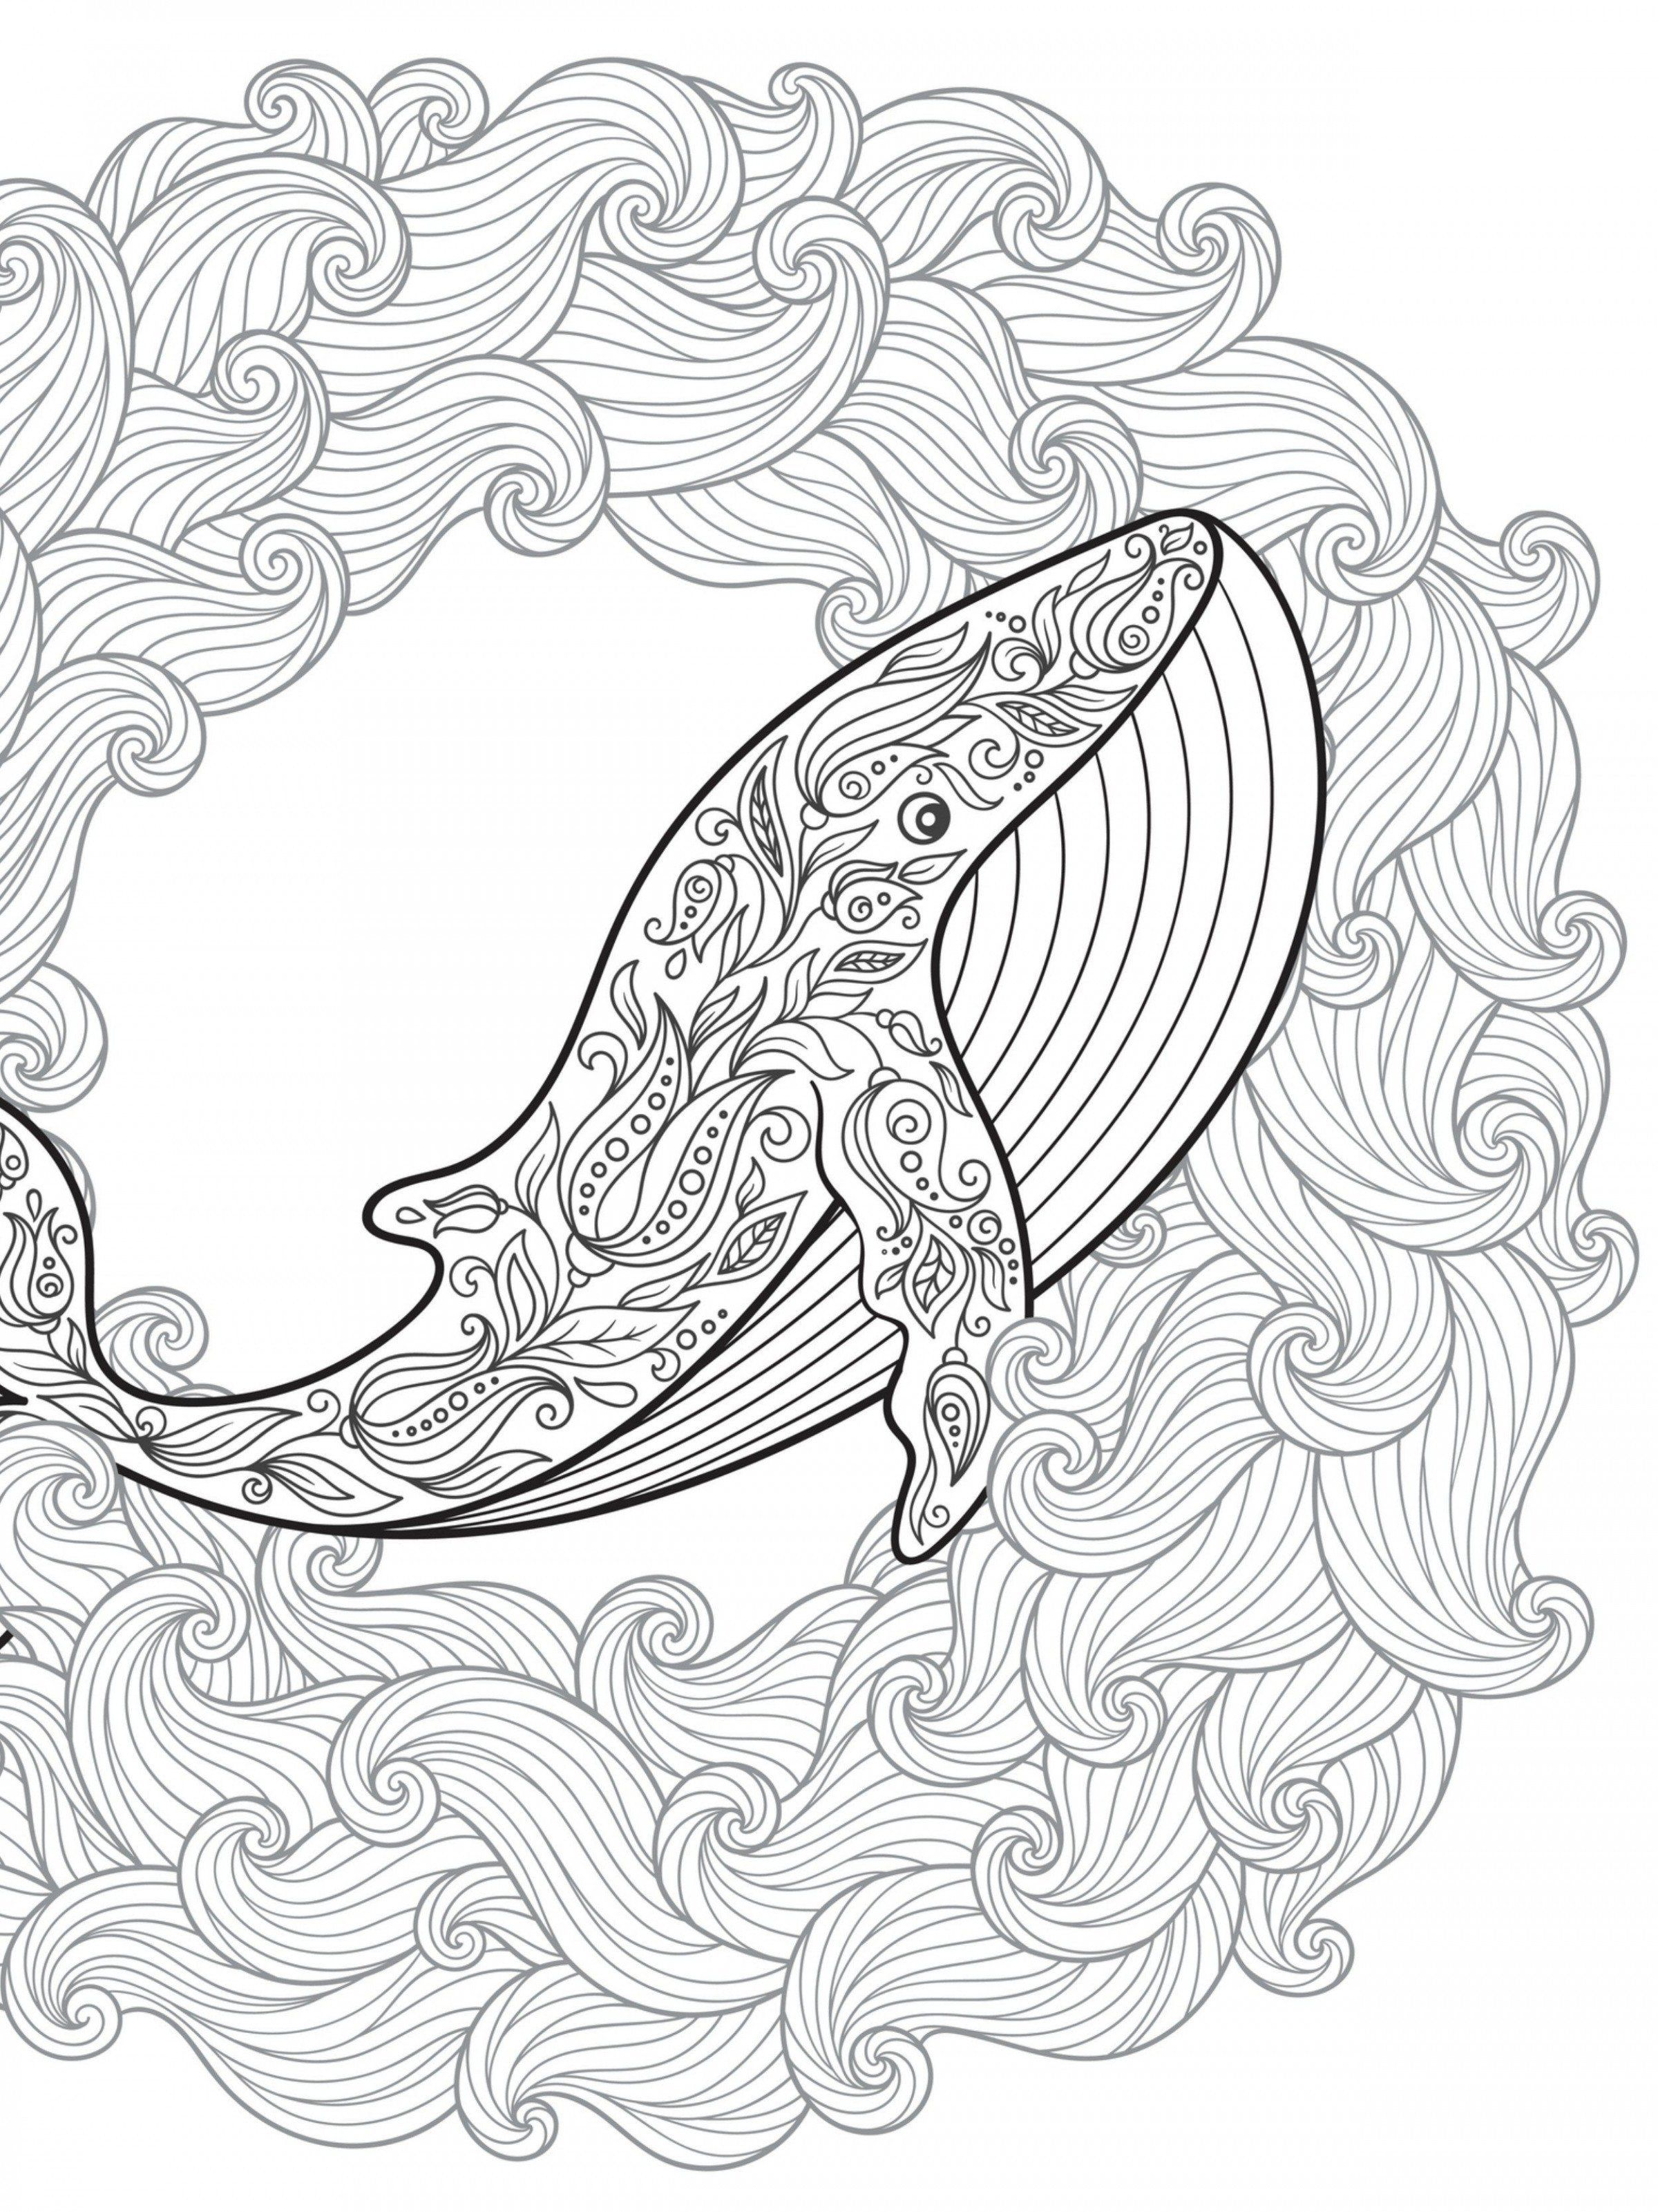 Fish Coloring Pages For Adults Unique Coloring Pages Websites In